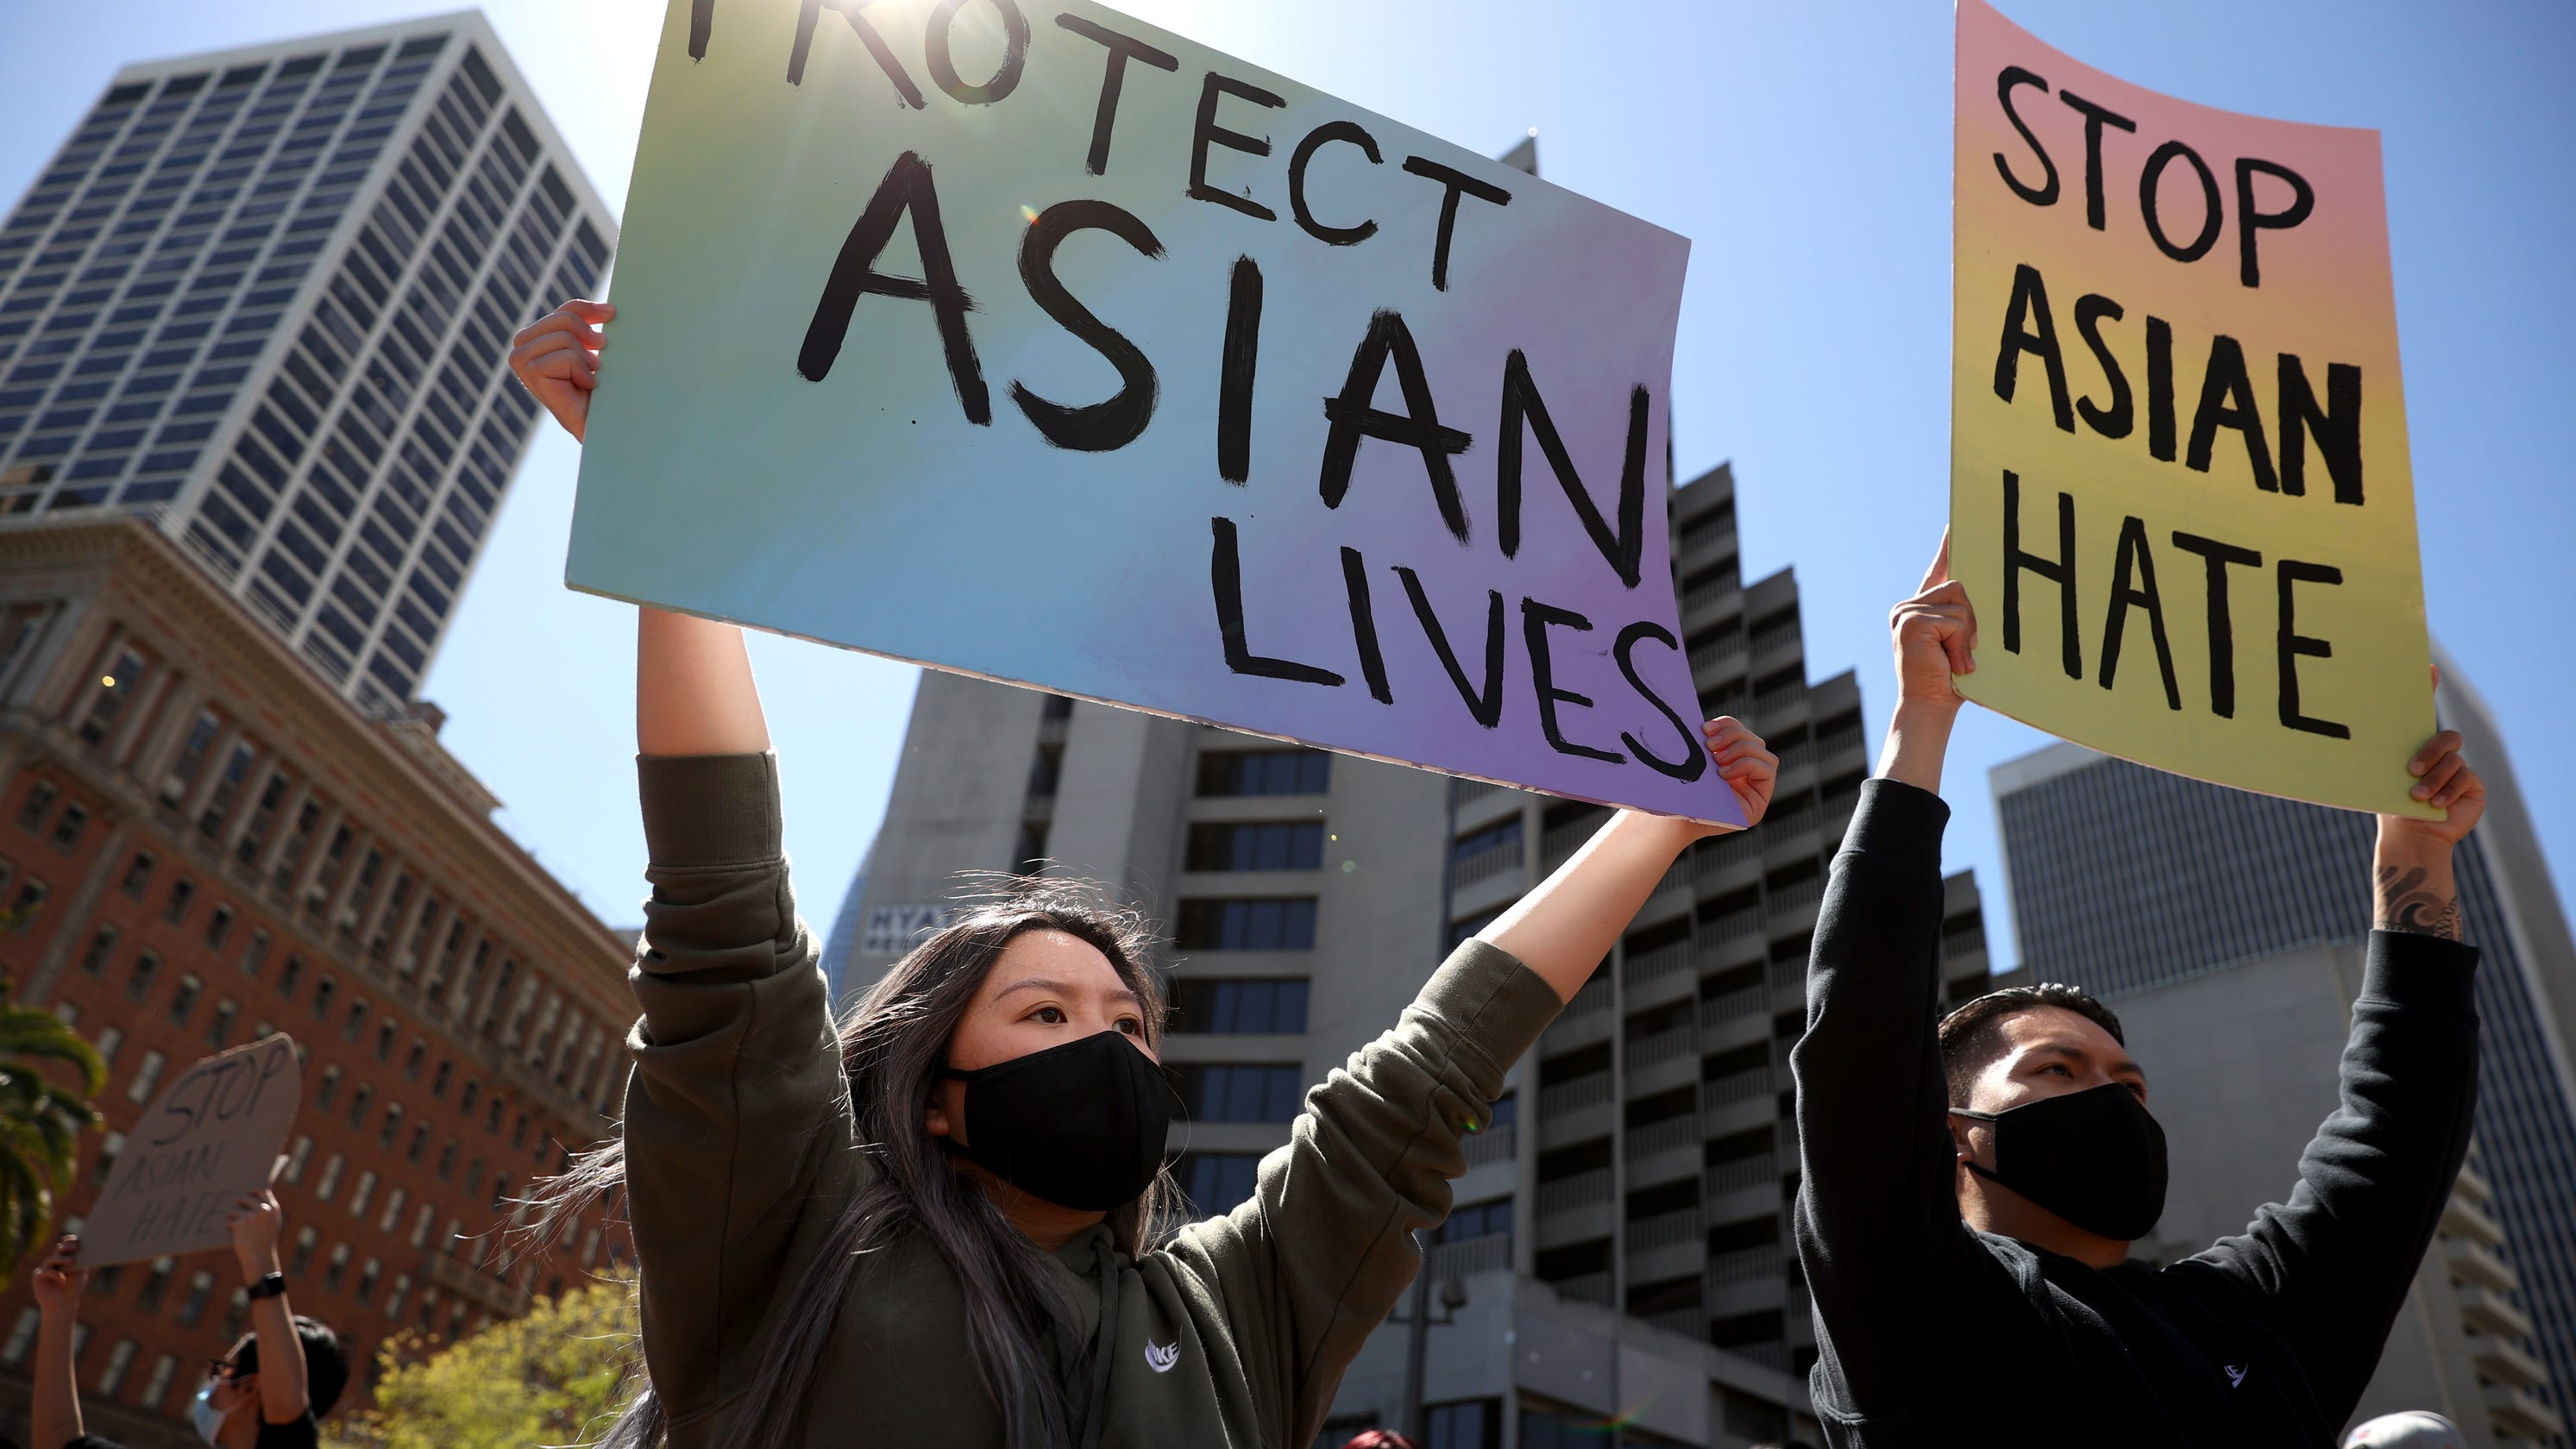 In bipartisan vote, Senate advances bill on hate crimes against Asian Americans